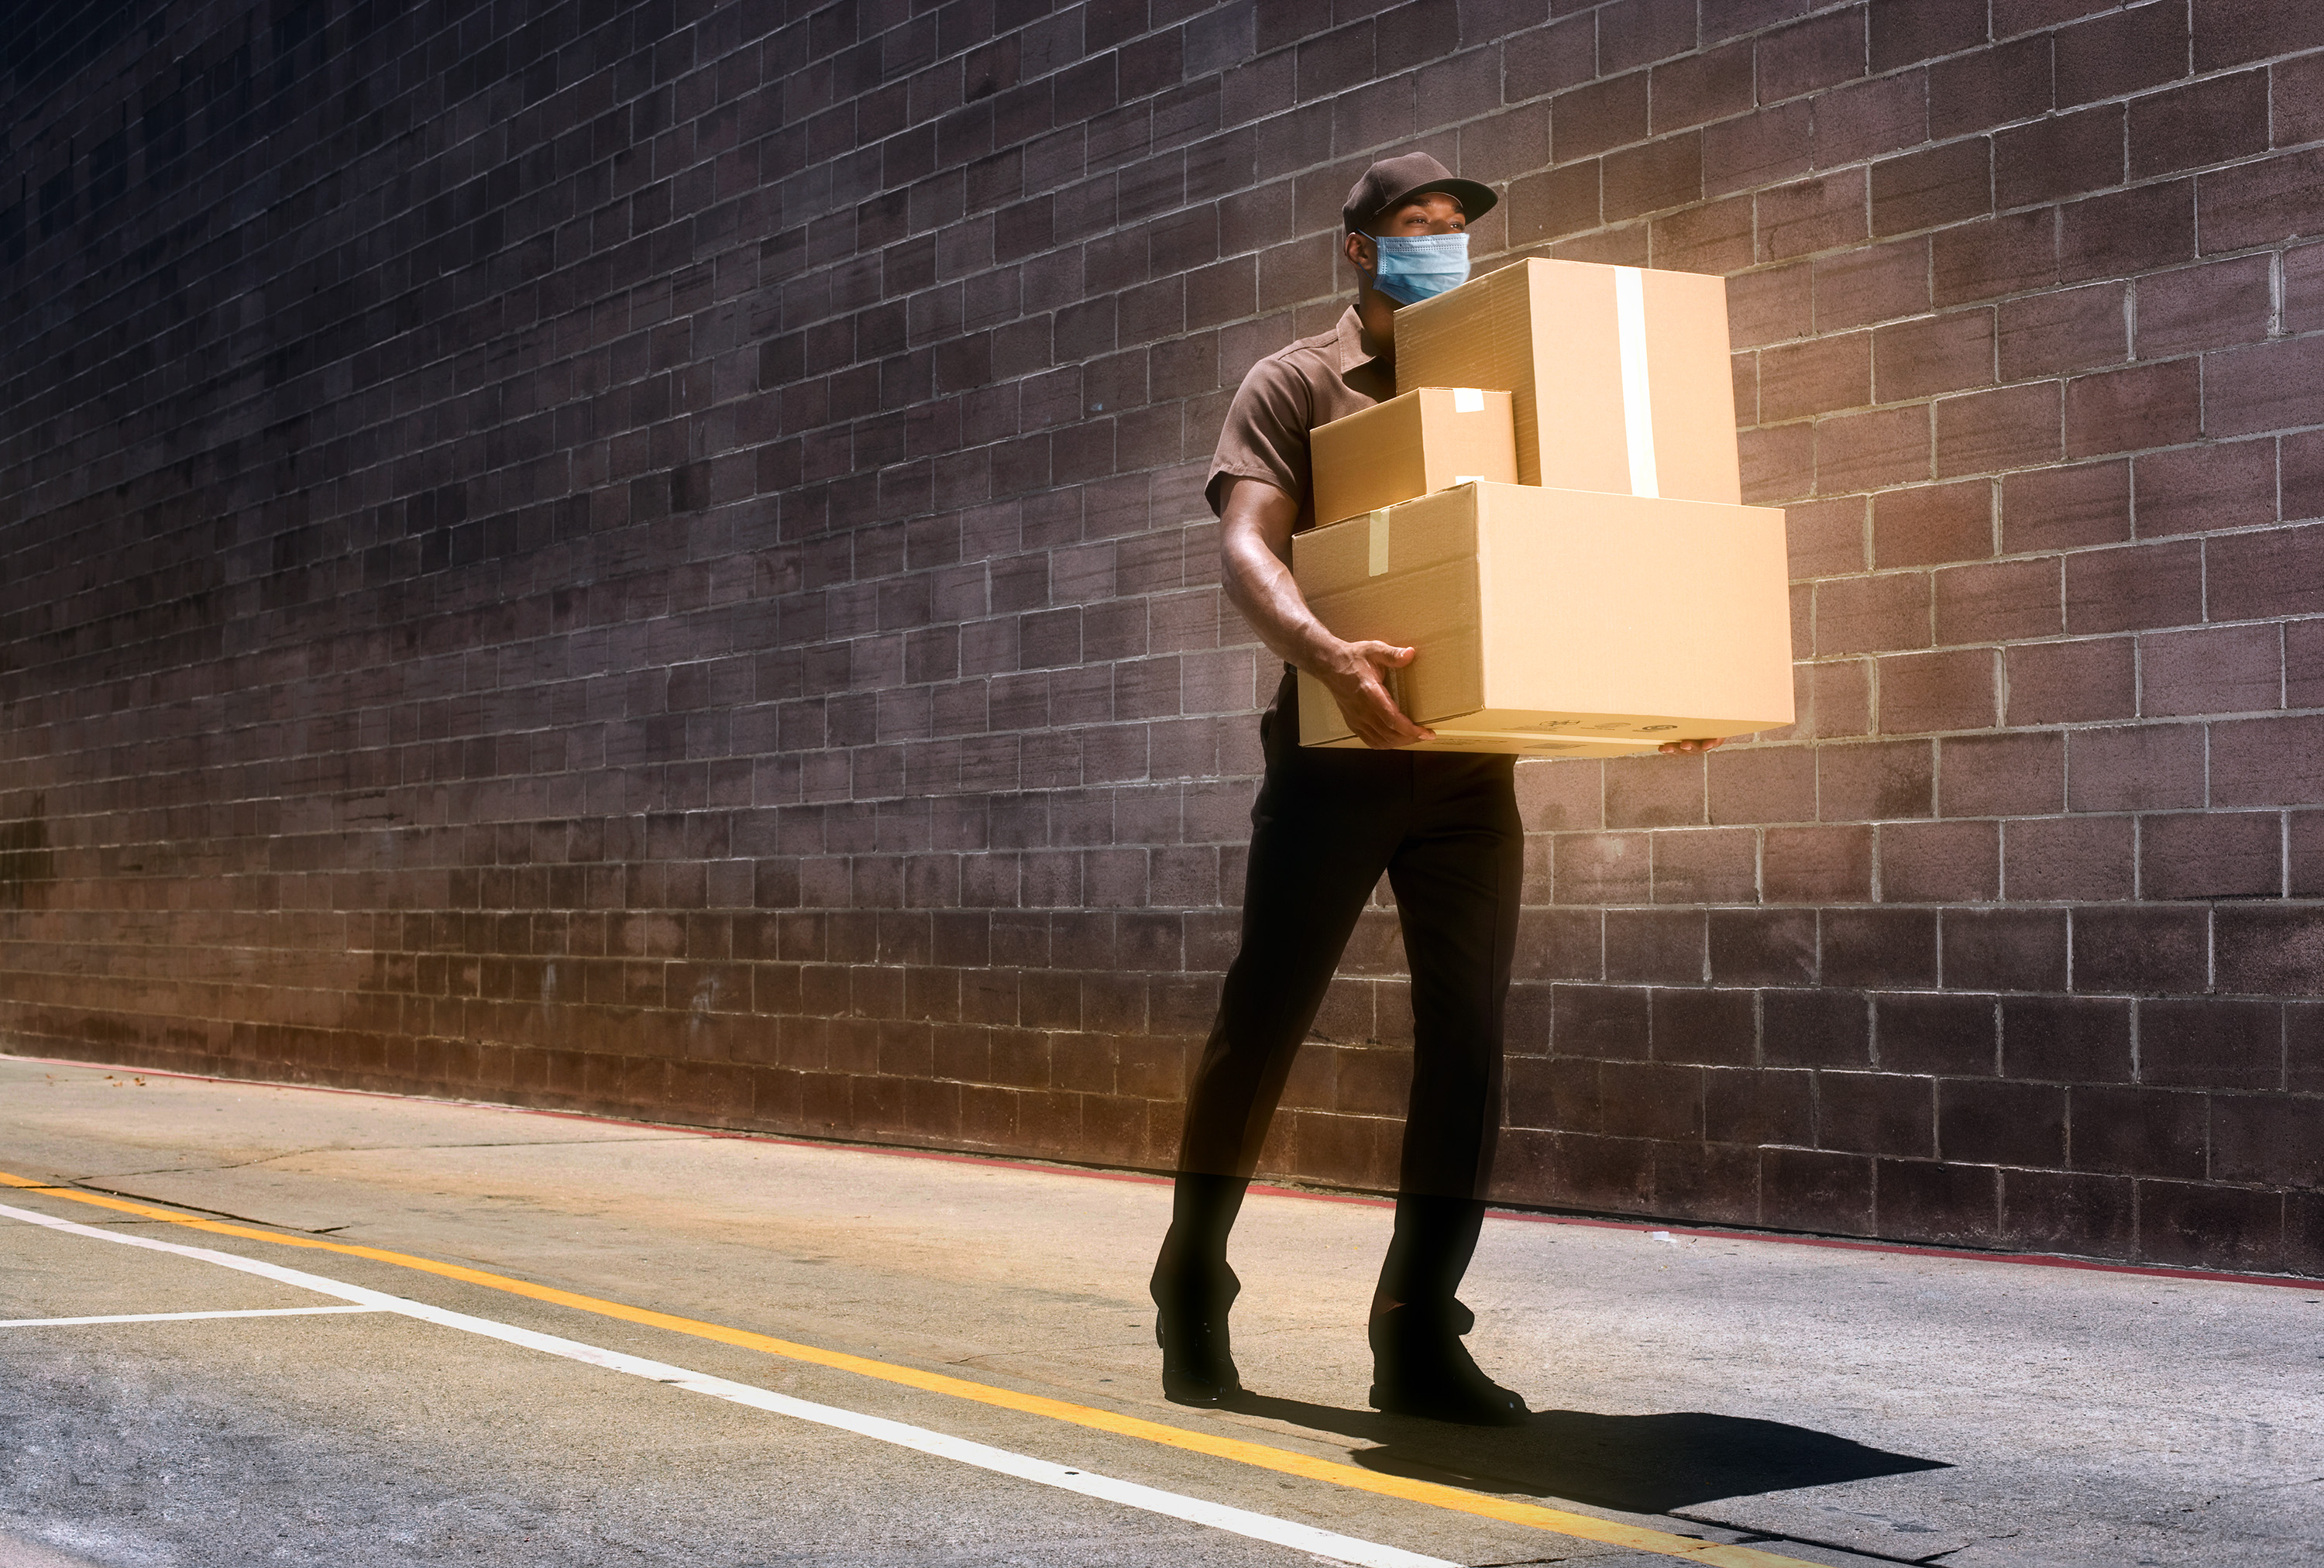 delivery guy wearing mask